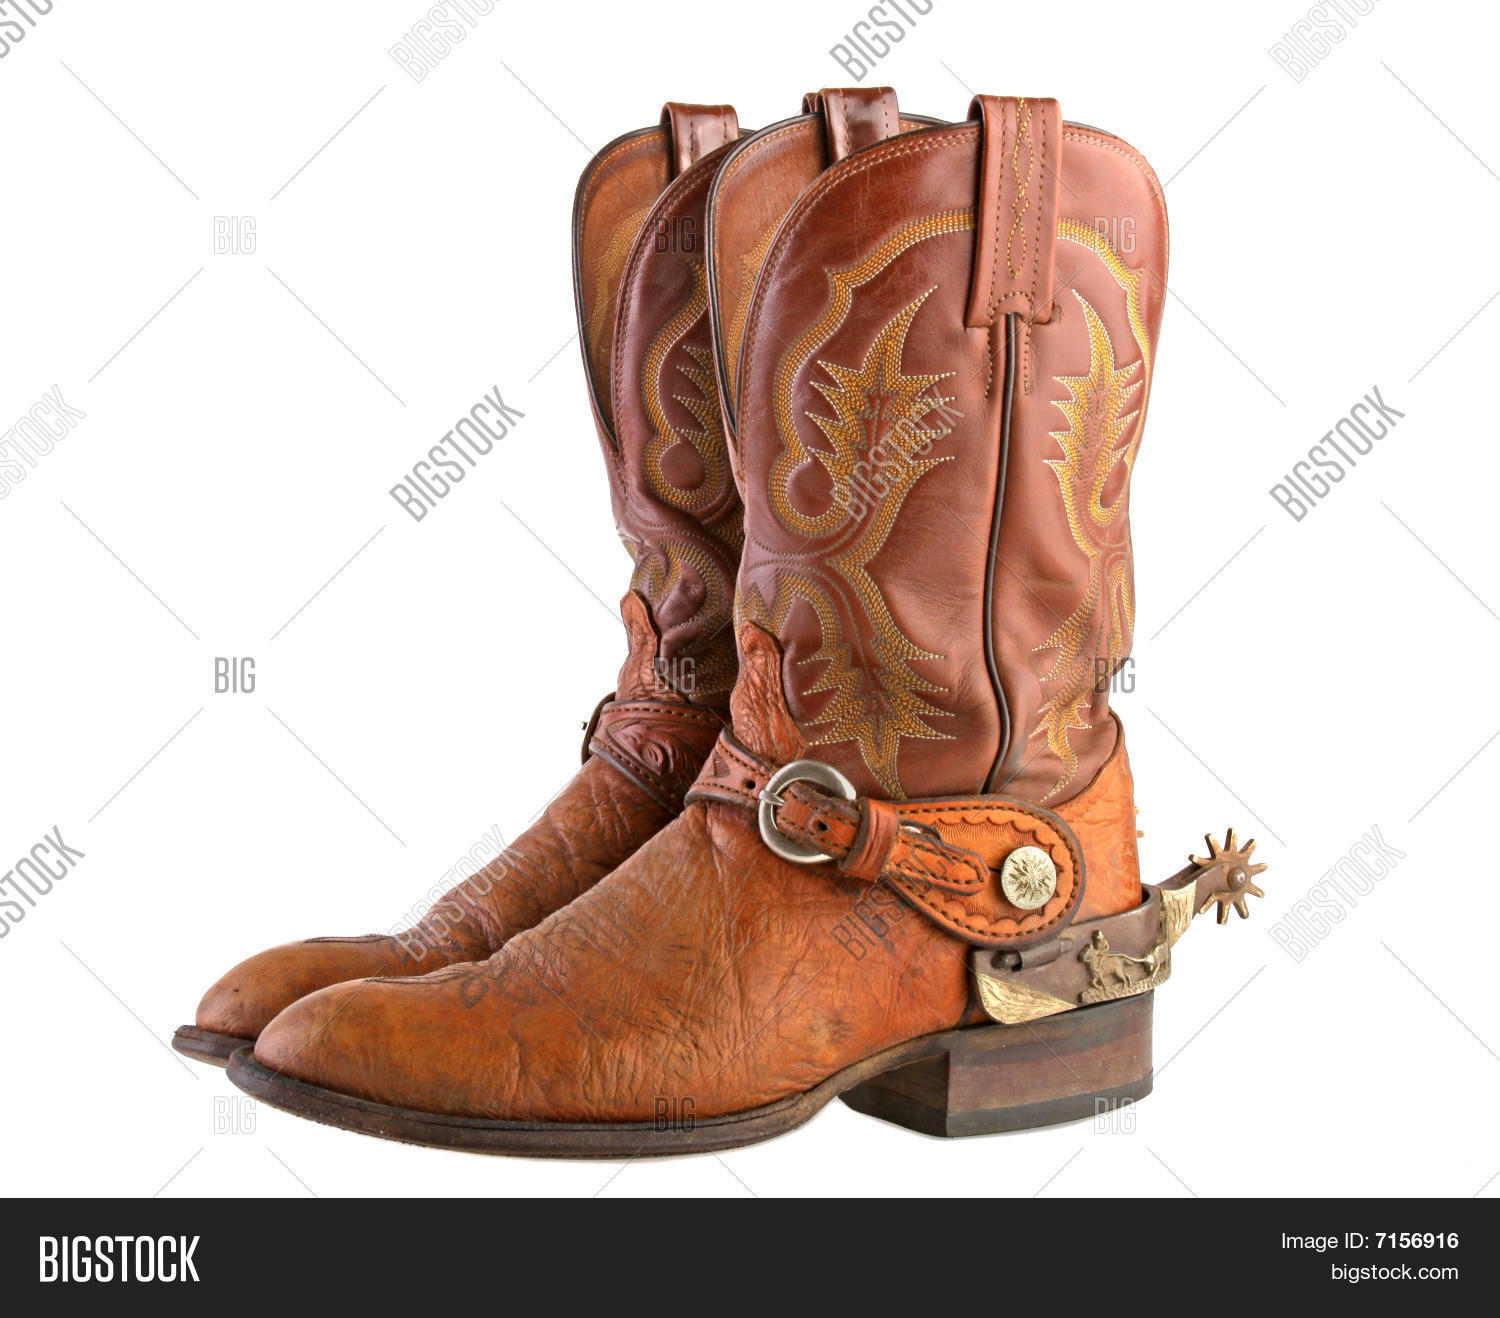 Cowboy boots & spurs Stock Photo & Stock Images | Bigstock